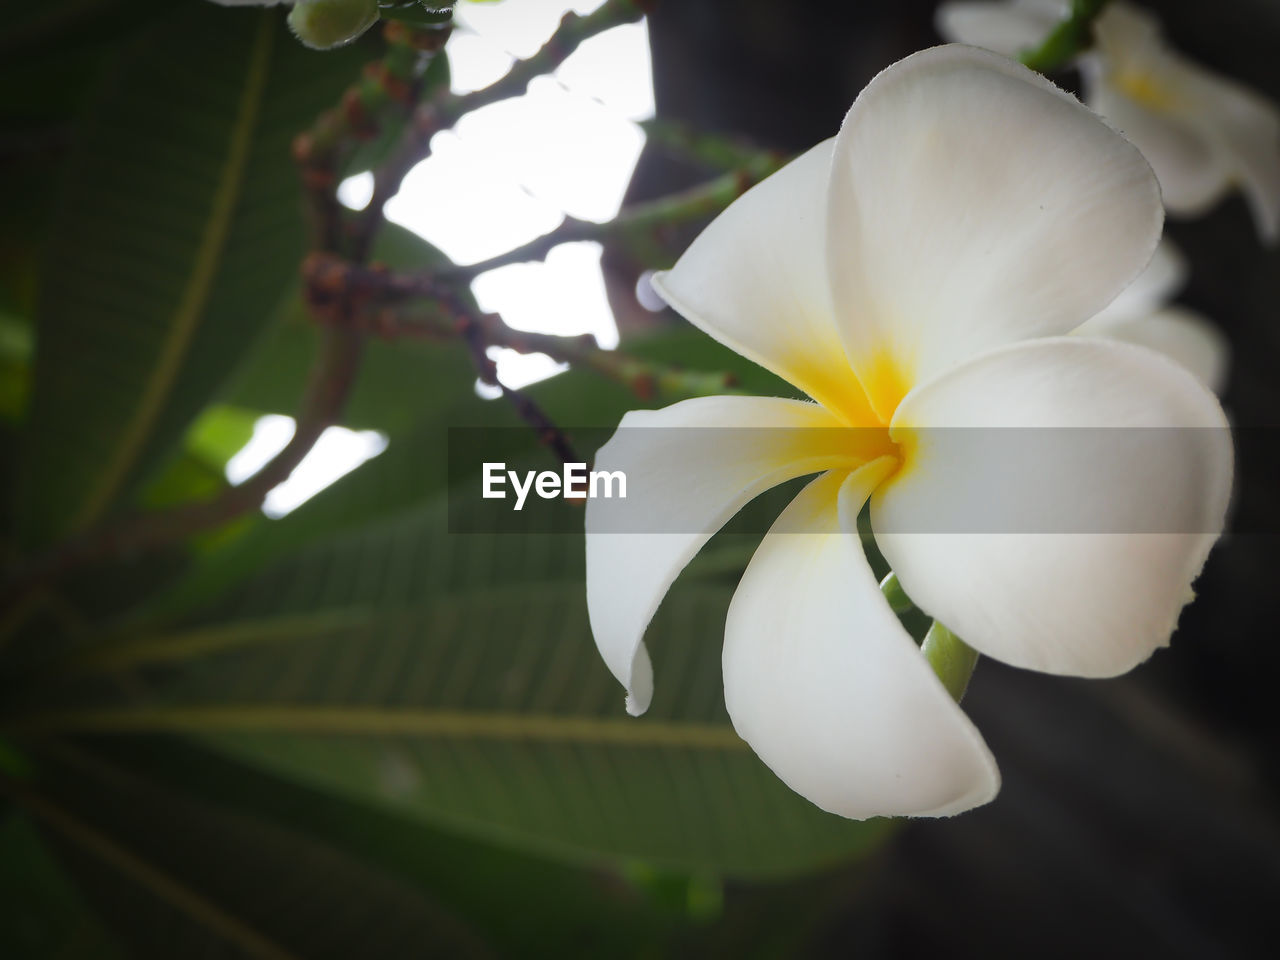 flower, beauty in nature, petal, white color, fragility, growth, flower head, freshness, nature, blossom, close-up, no people, springtime, outdoors, day, blooming, plant, frangipani, hibiscus, tree